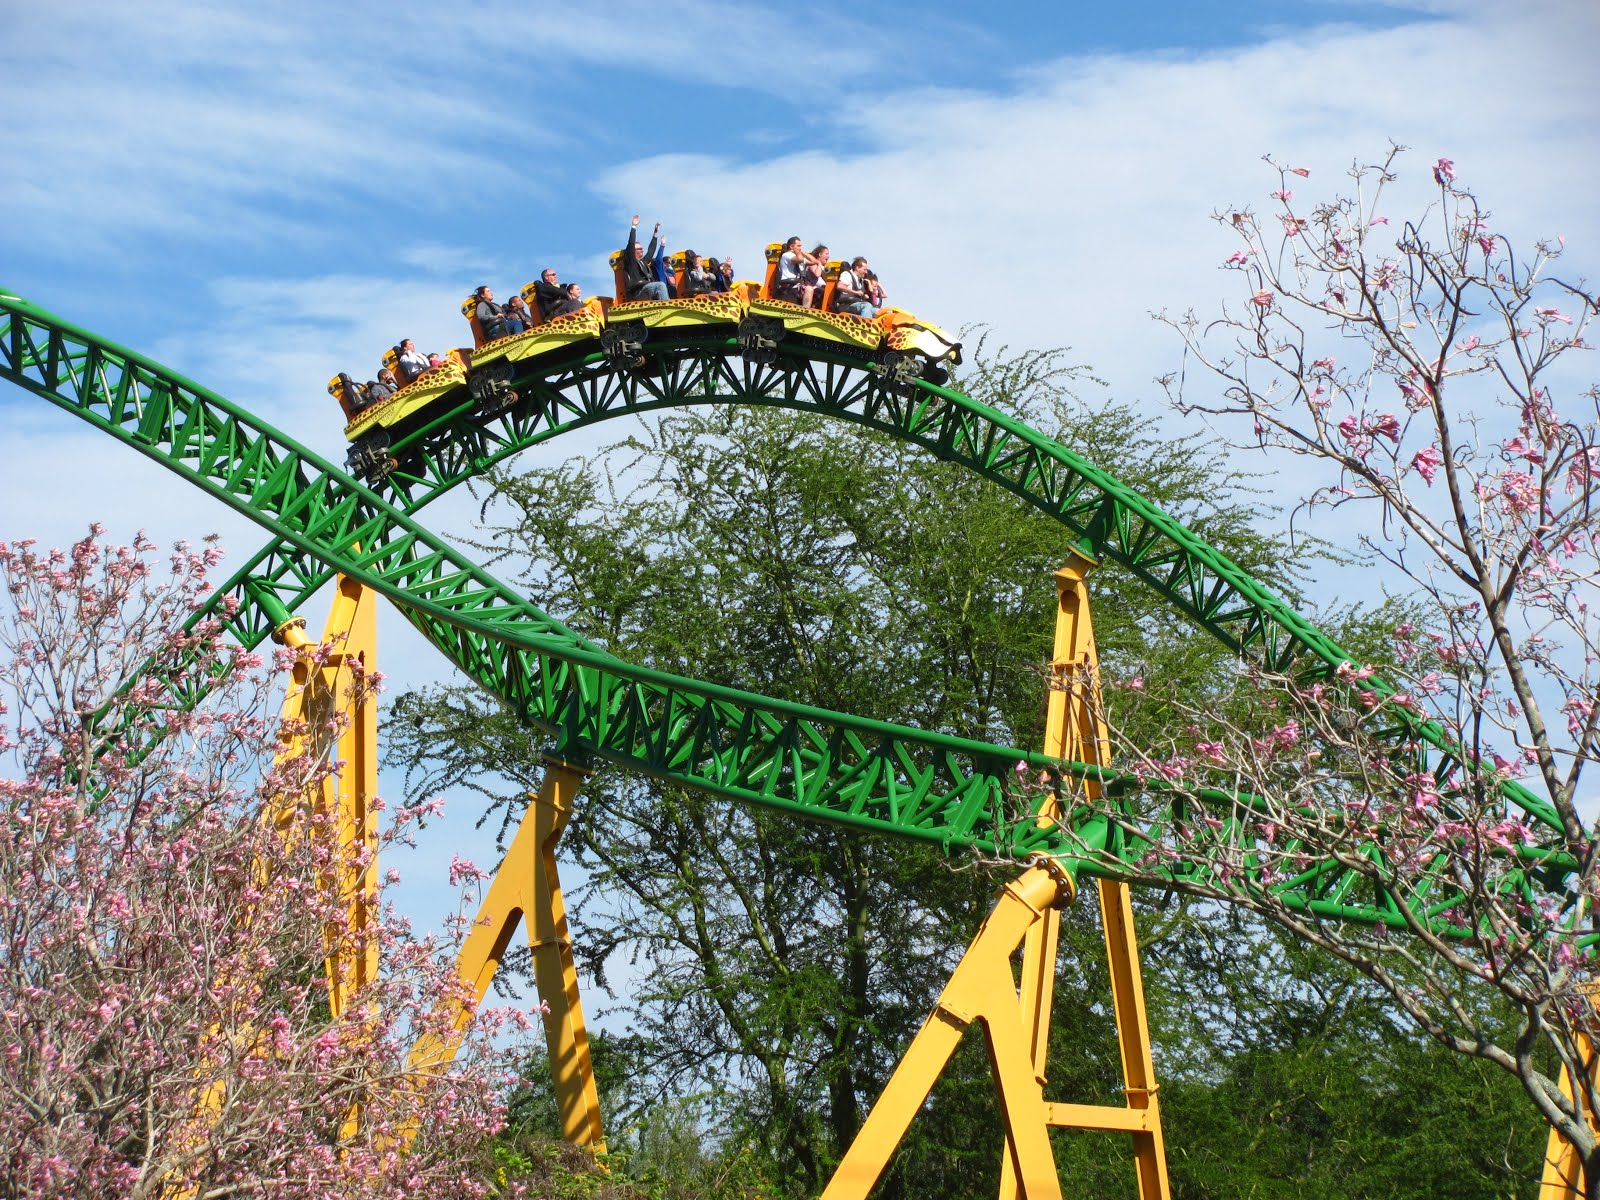 The River Section Is Exciting And The Return Trip Fits Right Into The Fun  Nature Of The Ride As Well. Nowhere Are Forces Crazy On The Ride, But  Fun Wise It ...